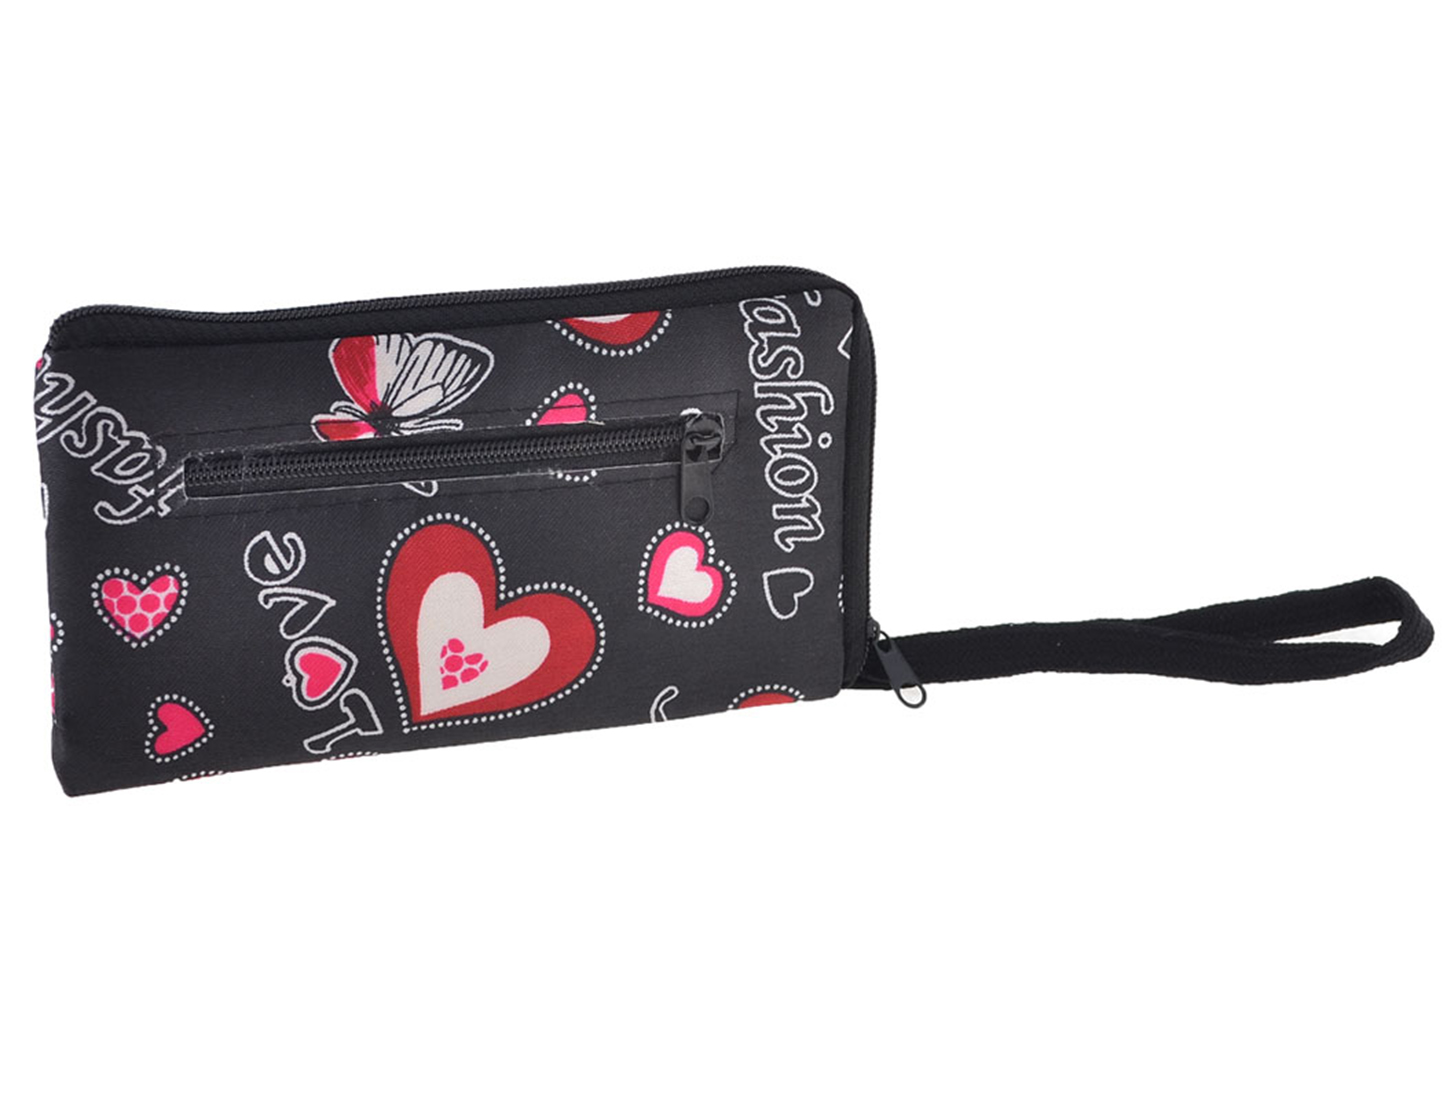 Lady Handheld Letters Pattern Inner Lining L Design Pouch Coin Bag Black Fuchsia